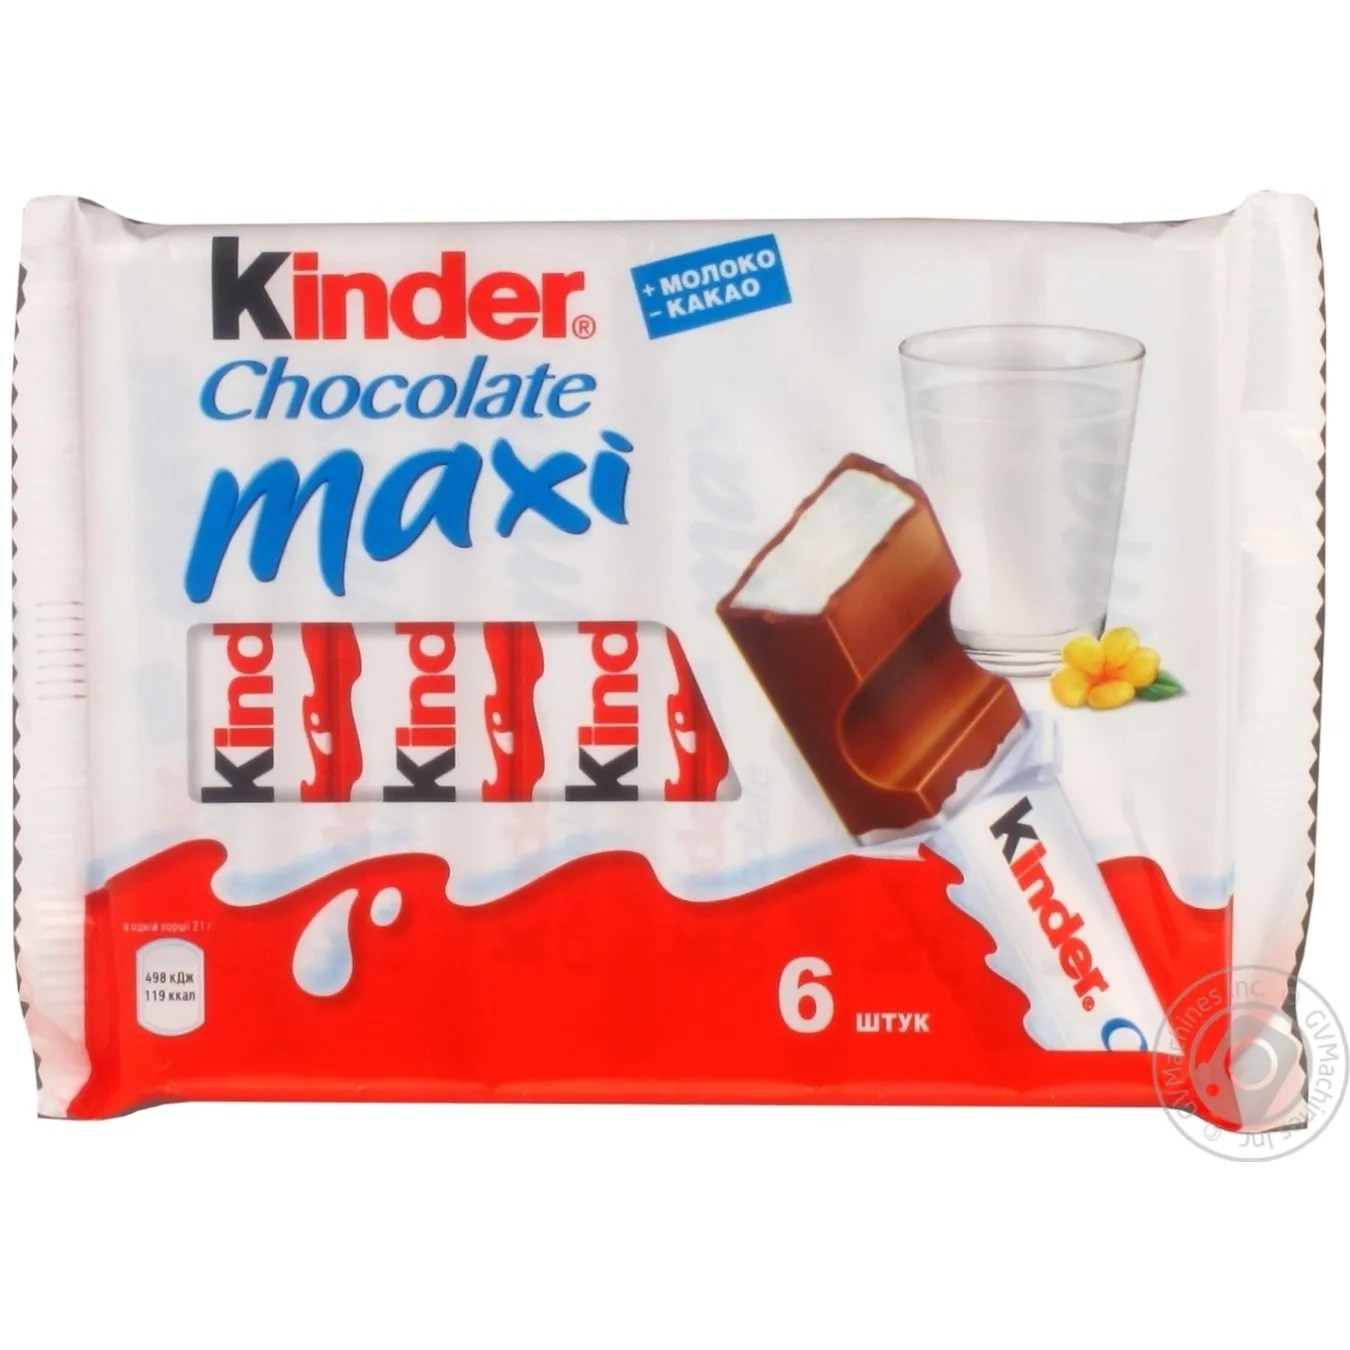 Kinder Maxi Big Pack Candy Bar Kinder 126g Germany Snacks Sweets And Chips